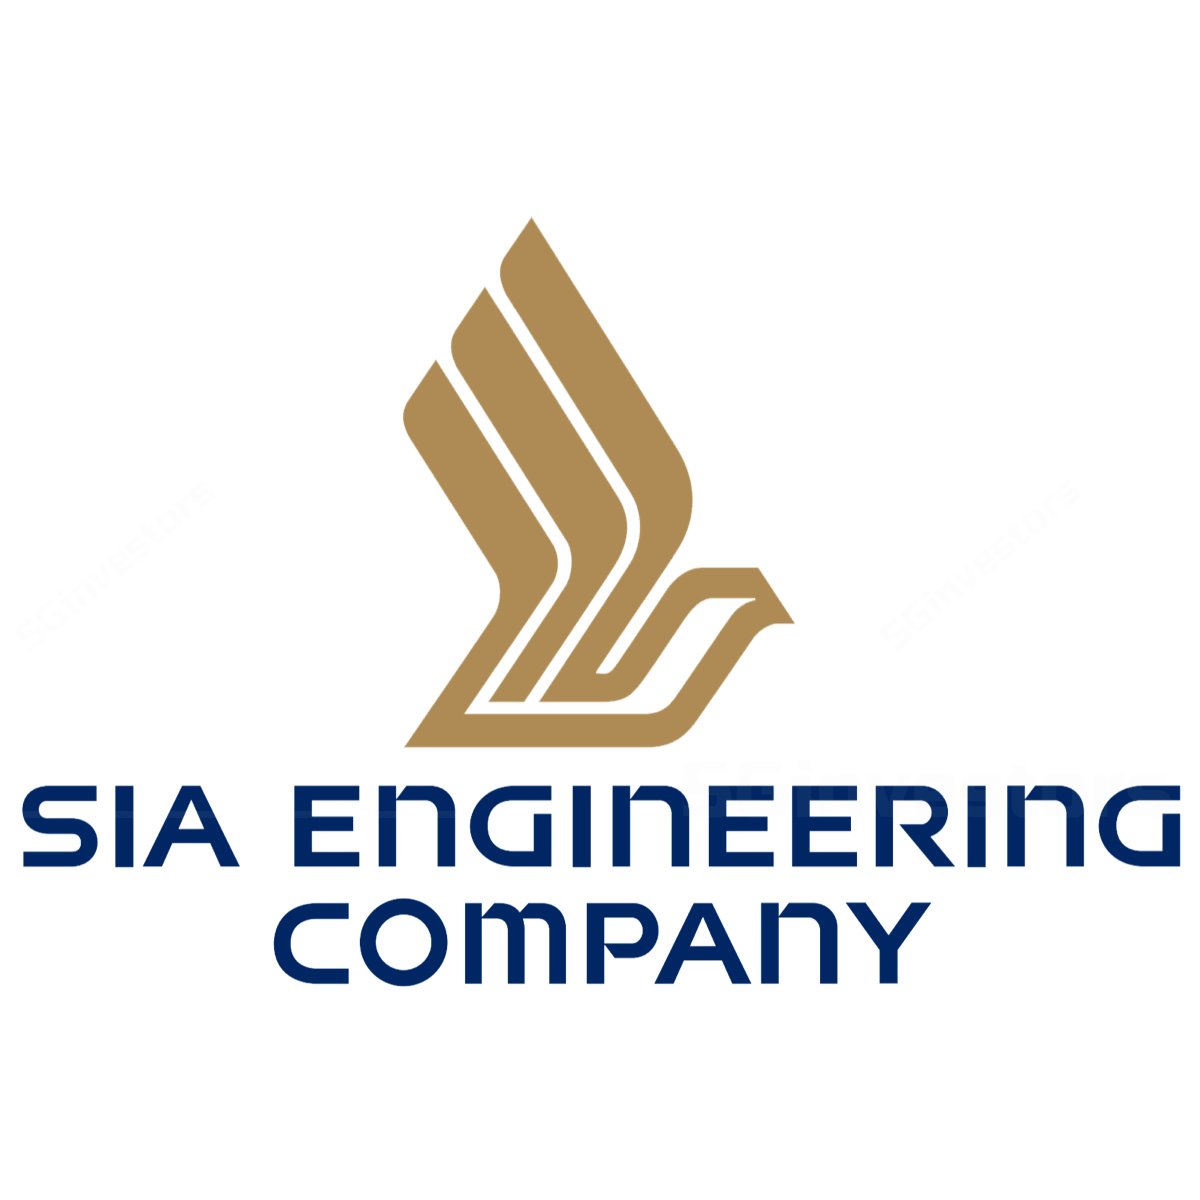 SIA Engineering Company Ltd - Phillip Securities 2017-07-26: Earnings Hit By Higher Operating Costs